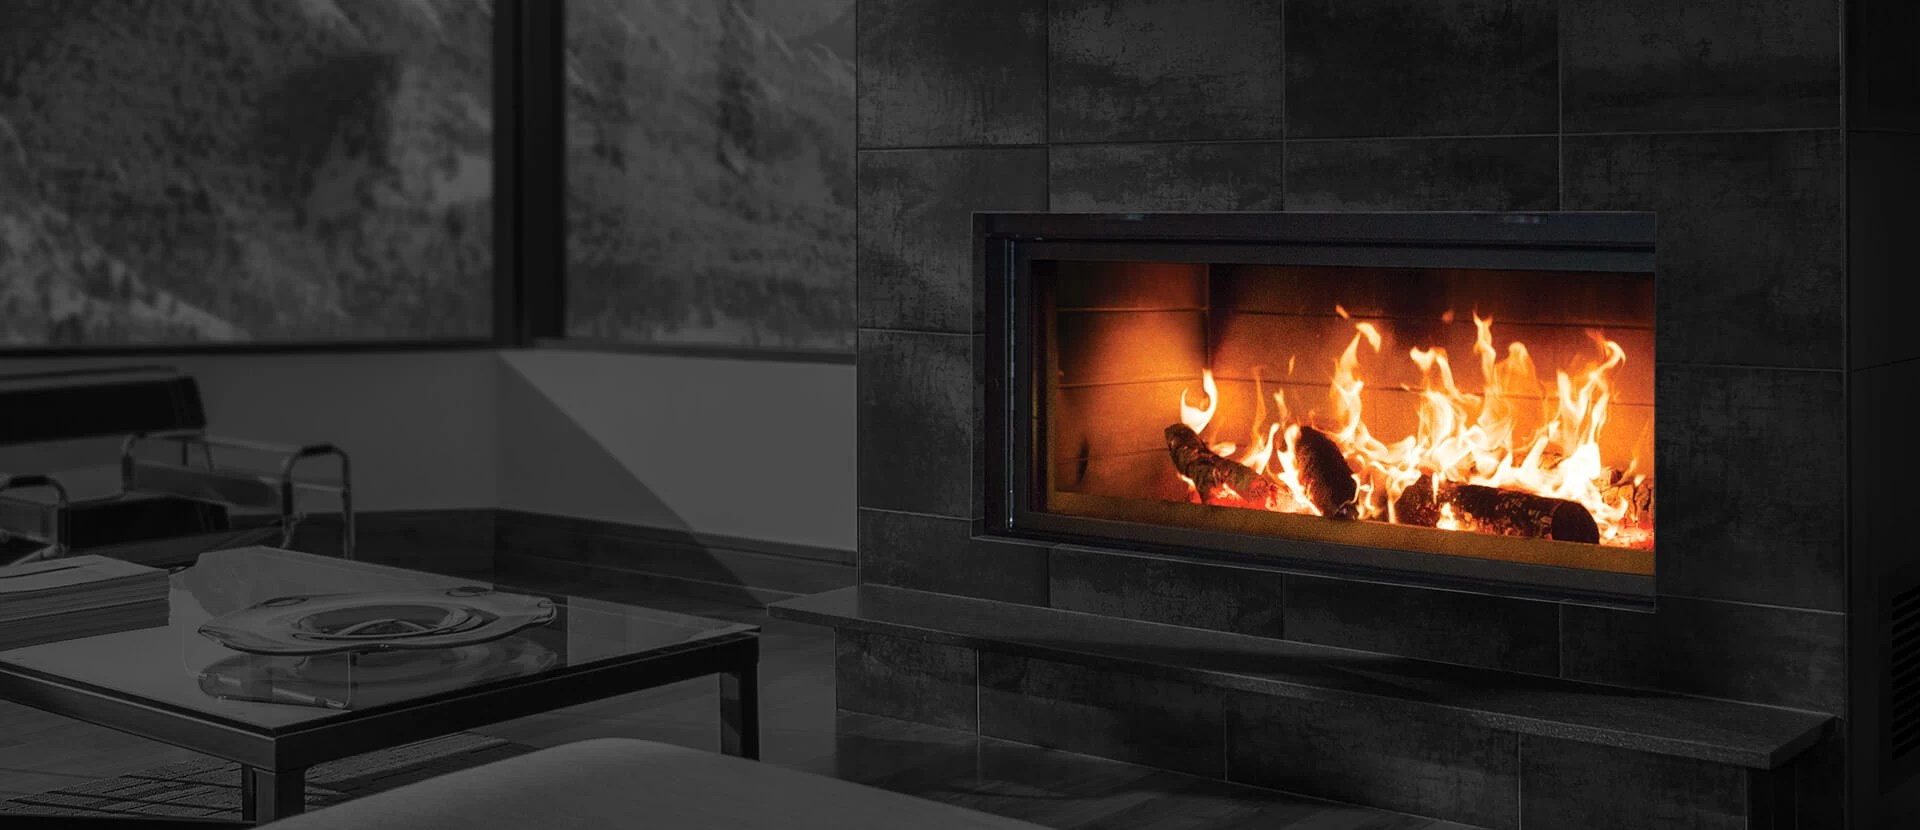 kitchens only kitchen gift ideas renaissance fireplaces - linear 50 wood burning fireplace ...